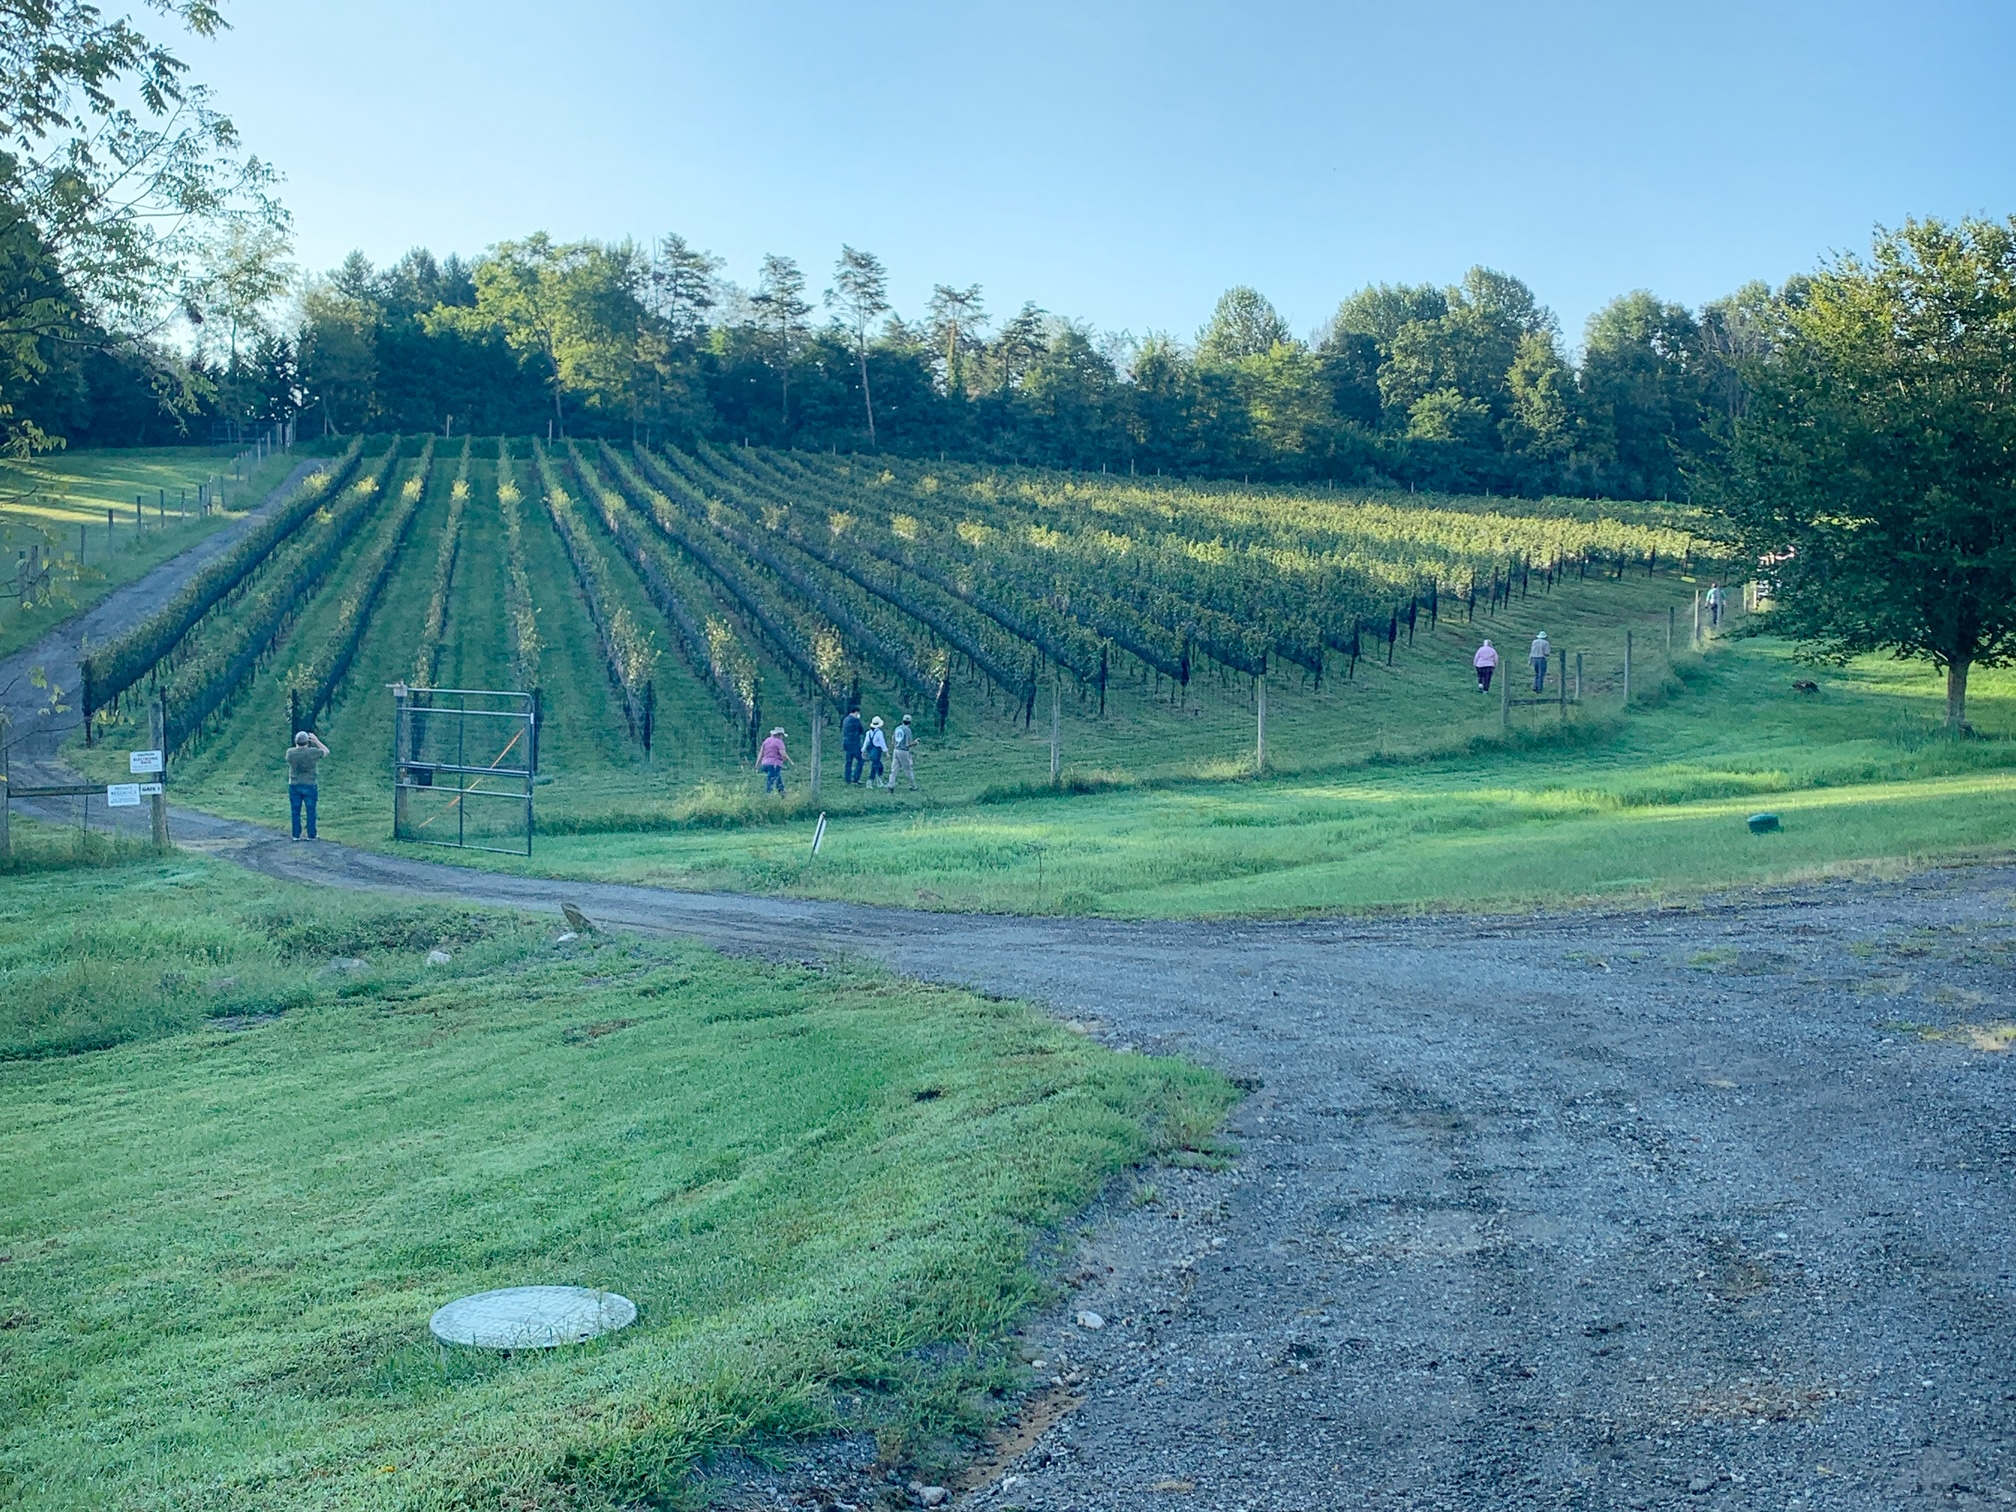 Getting the Most from Virginia Wine Month